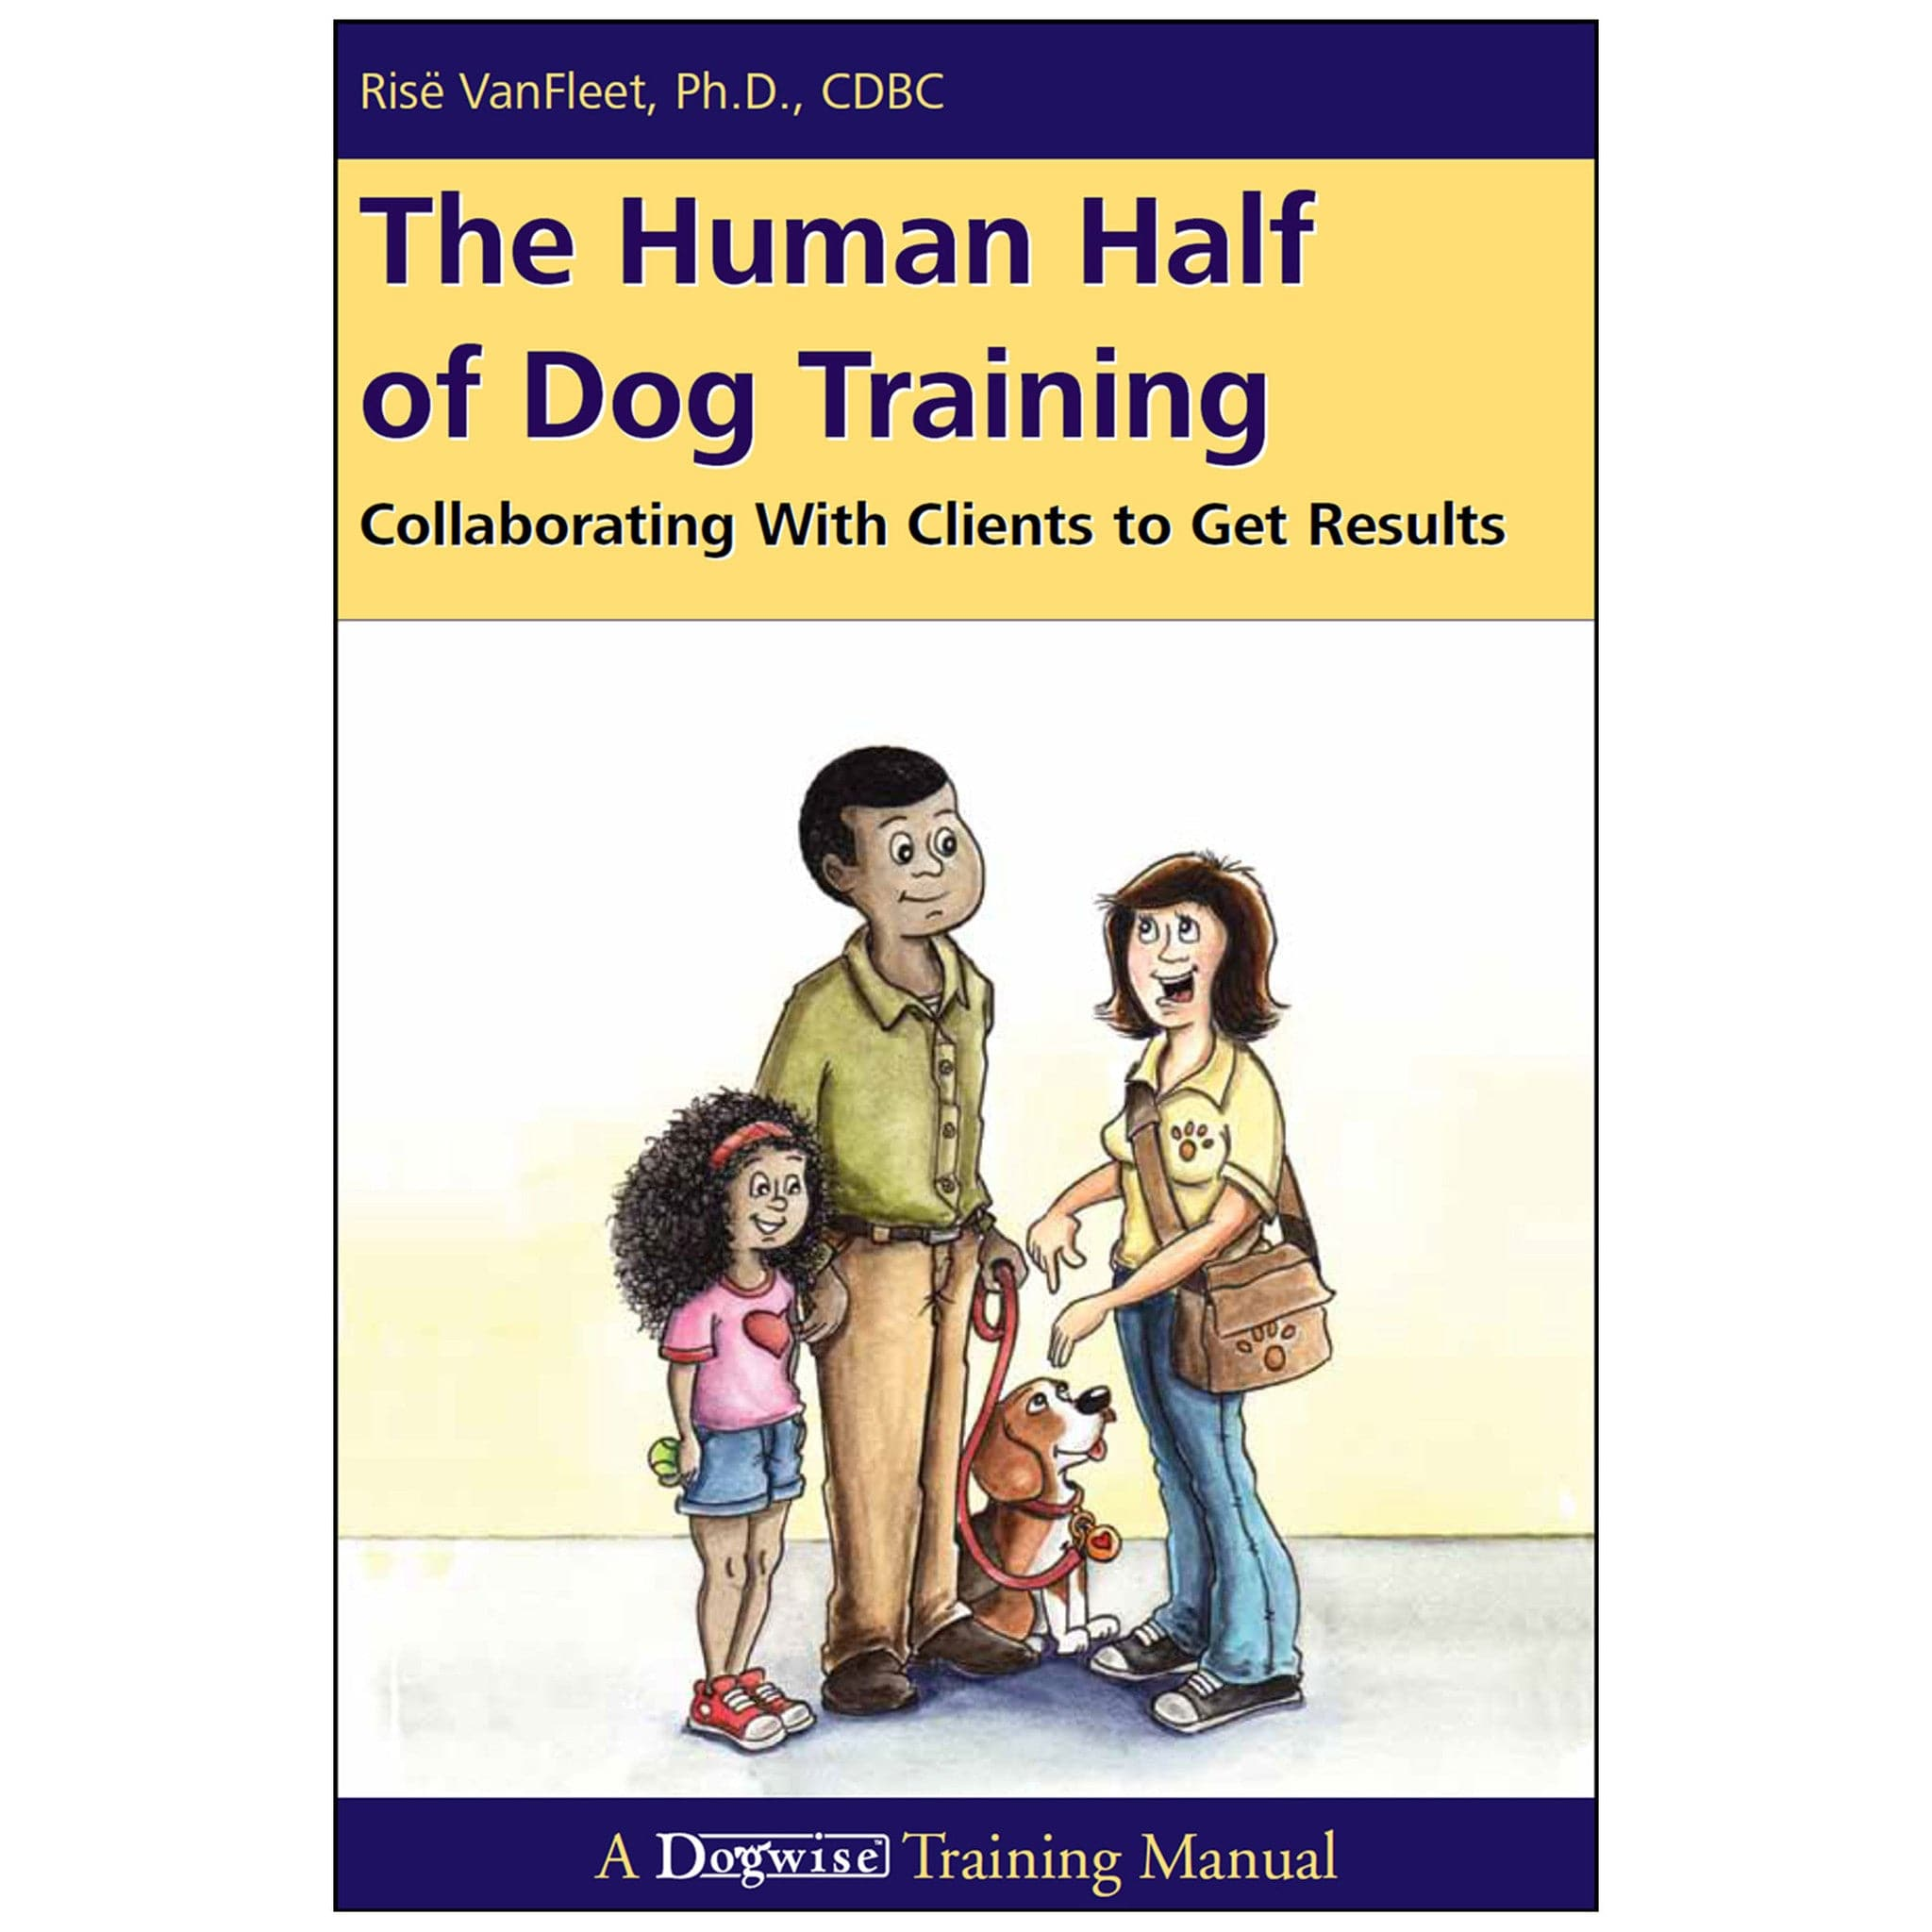 The Human Half of Dog Training